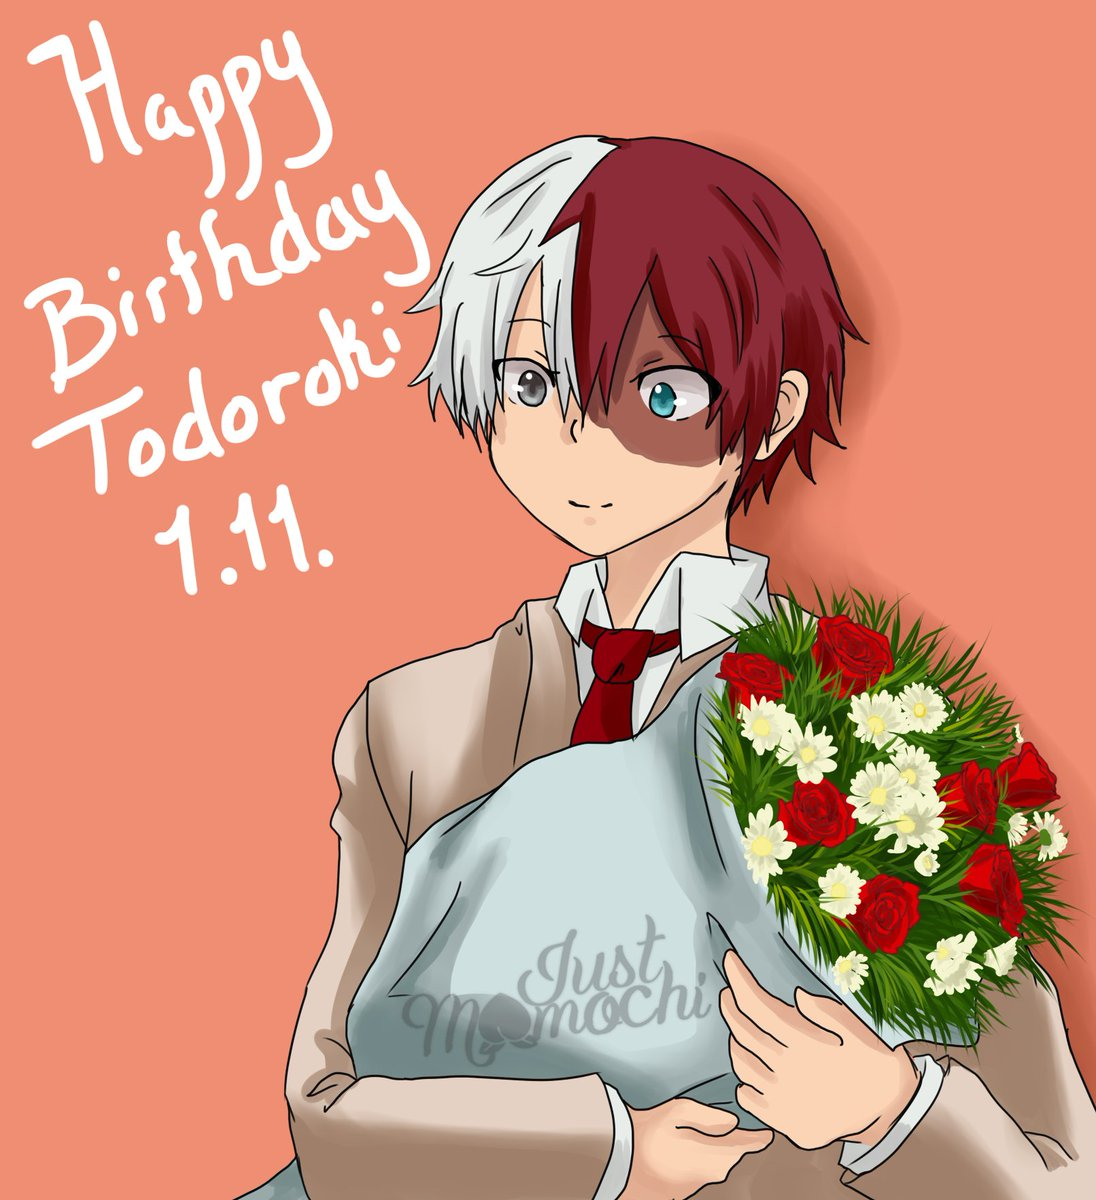 It's still Todoroki's Birthday over here! Happy birthday to my